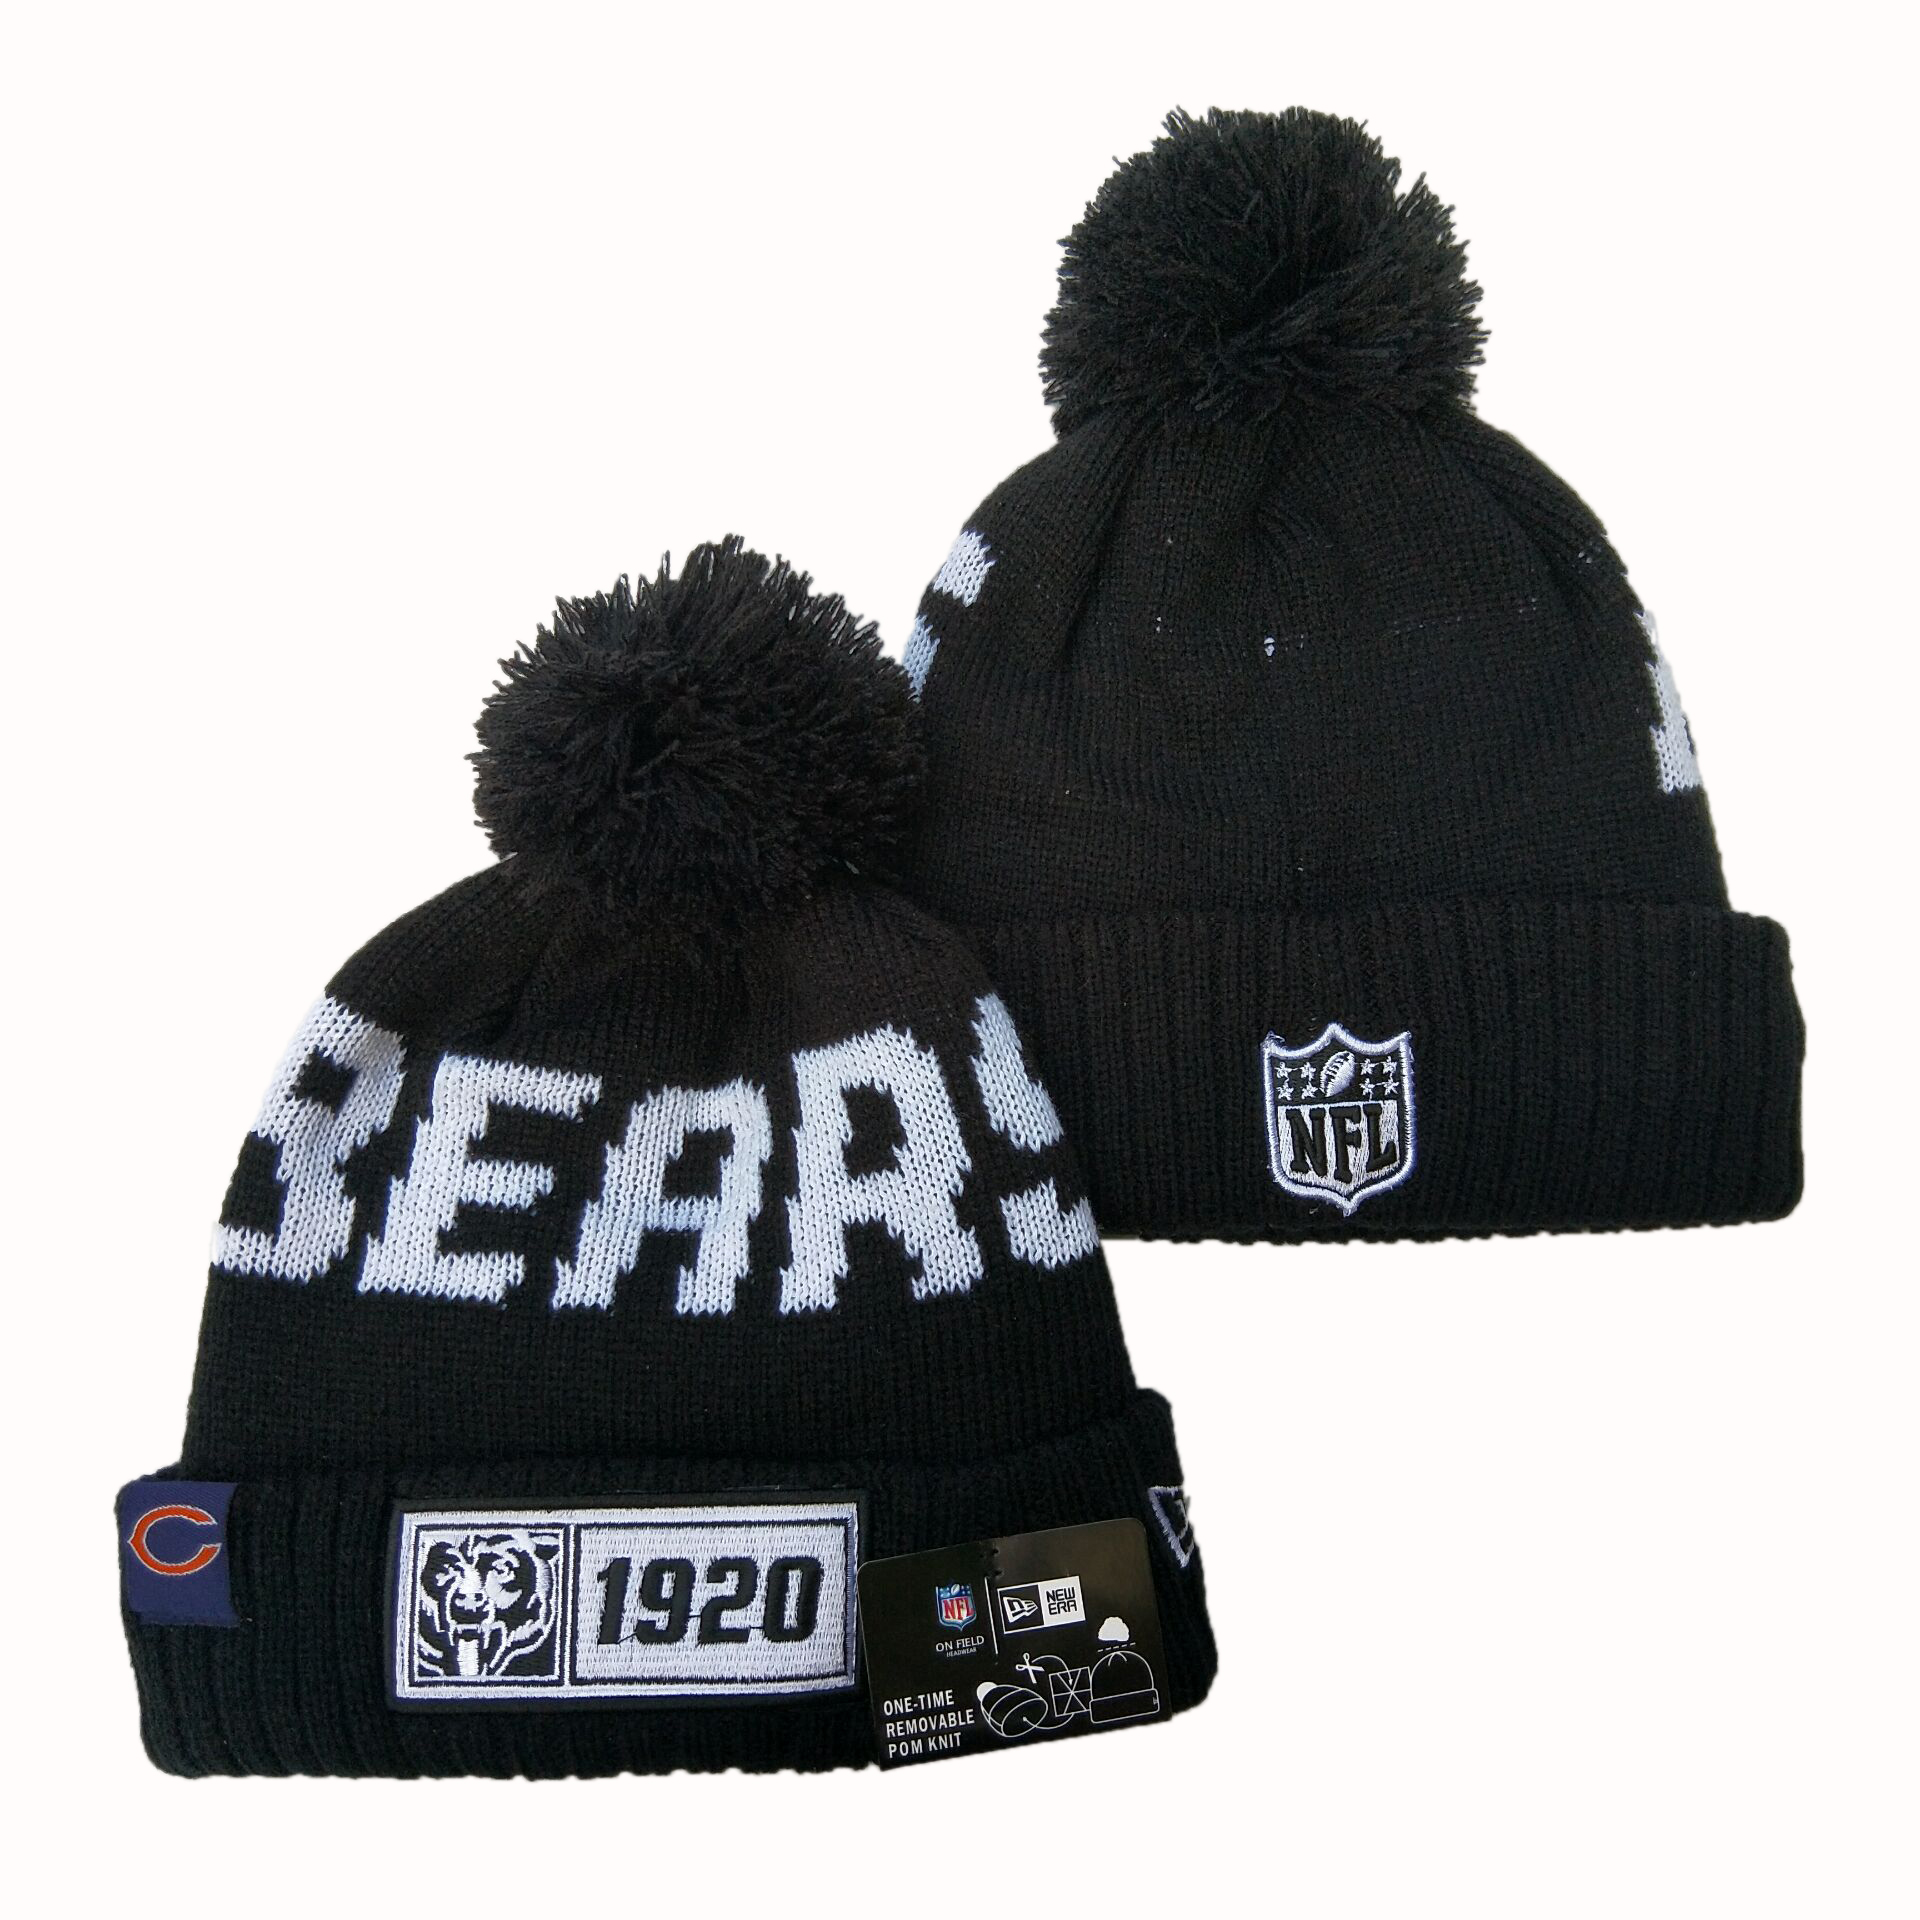 NFL Chicago Bears New Era 2019 Sideline Road Reverse Sport Knit Hats 041